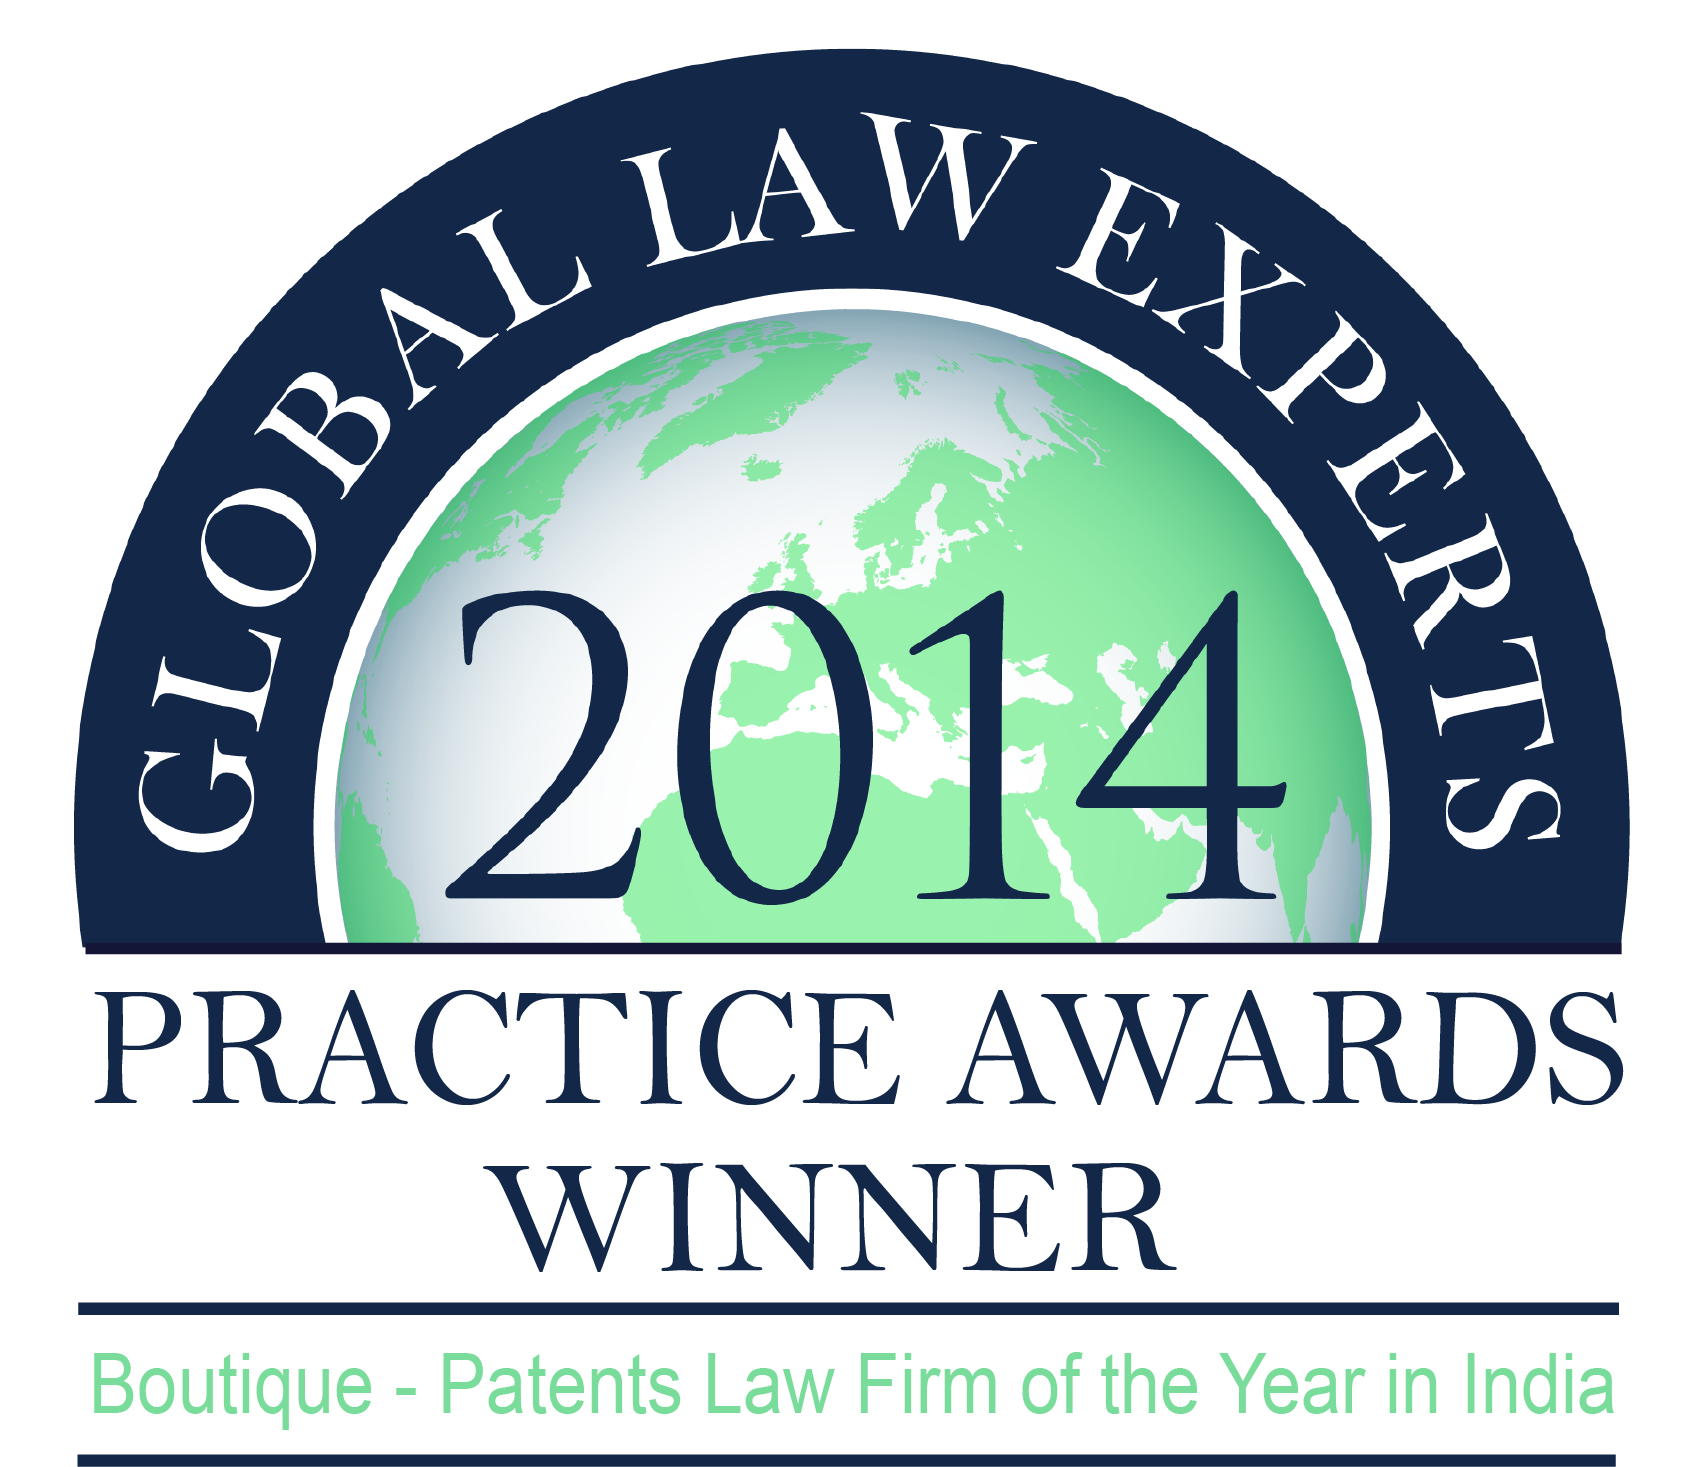 Global Law Express 2014, Practice Awards Winner - Boutique Patents Law Firm of the Year in India